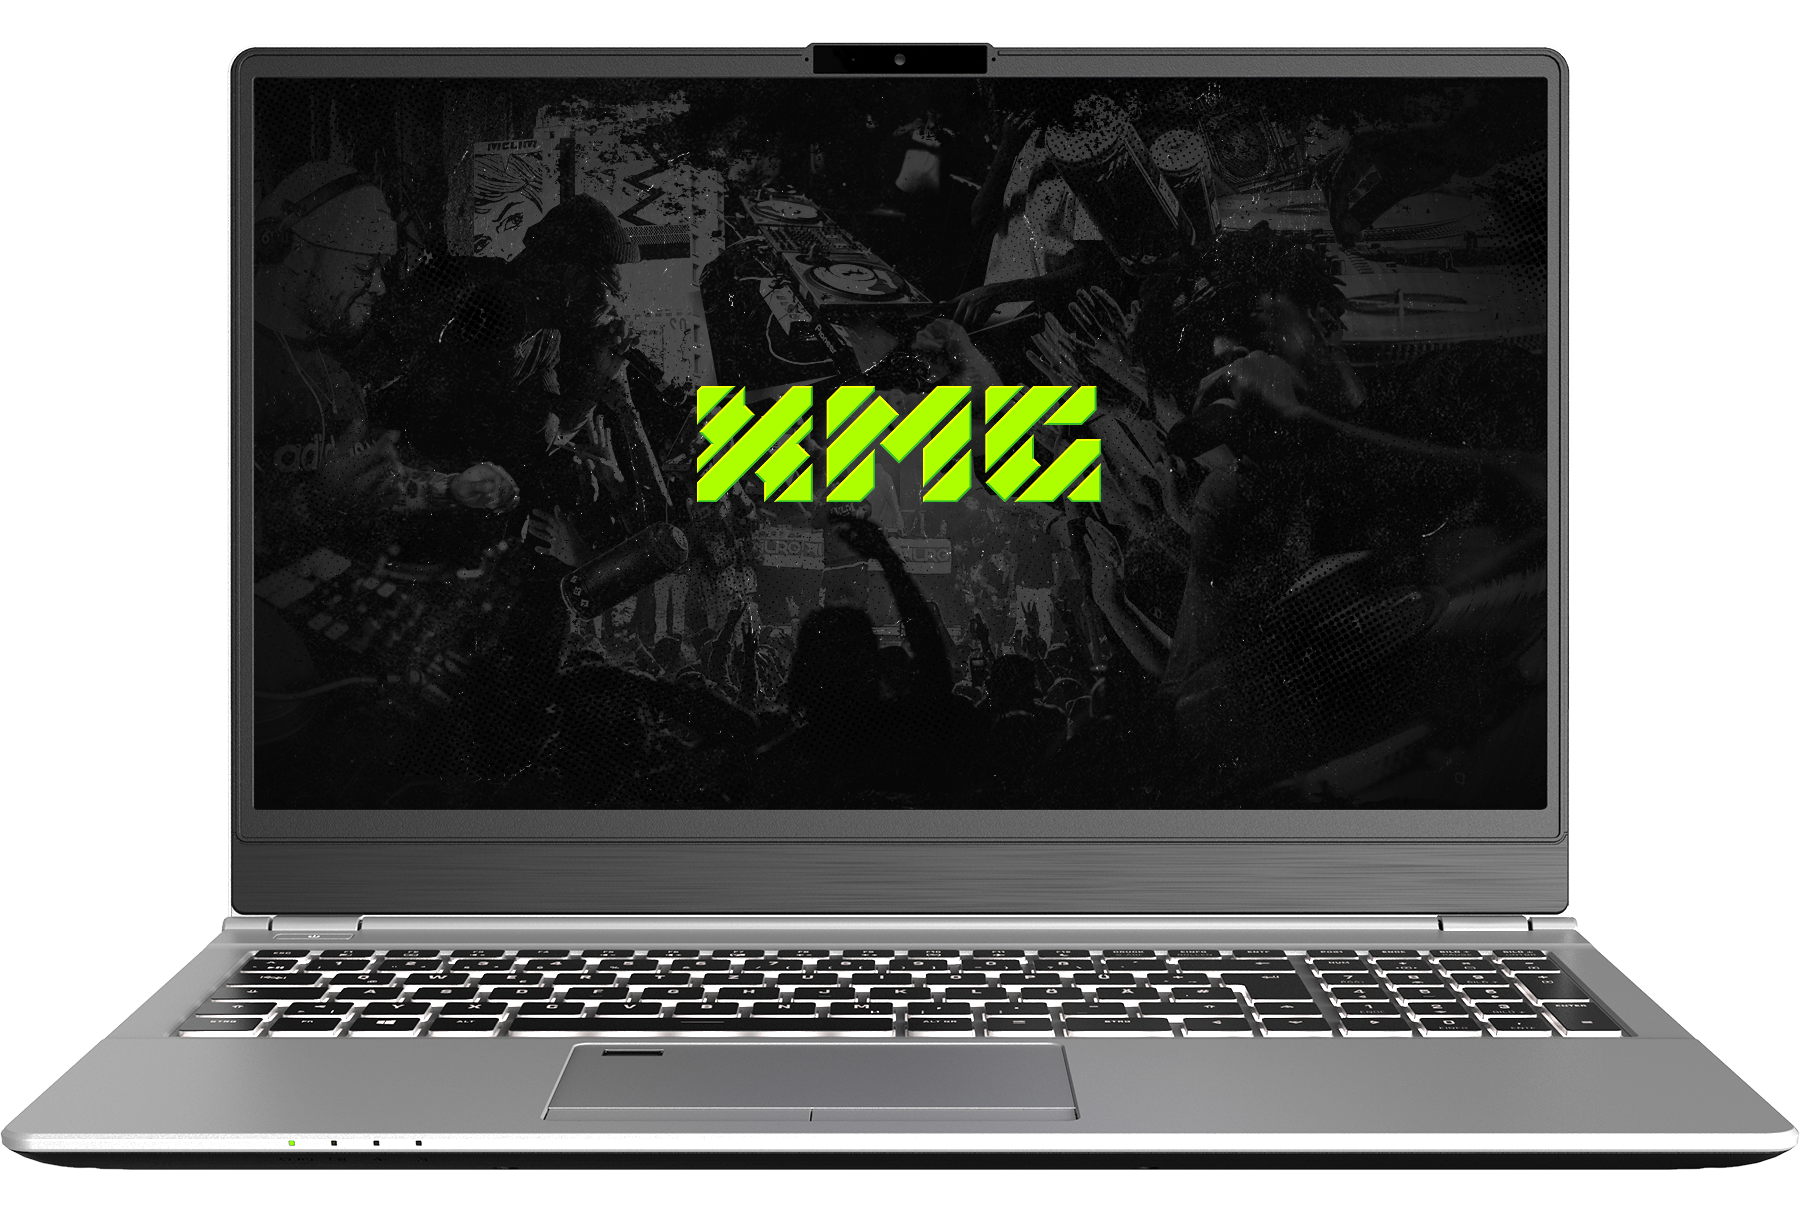 A 15 Inch Thin Laptop For The Road No More Dongles With The Xmg Dj 15